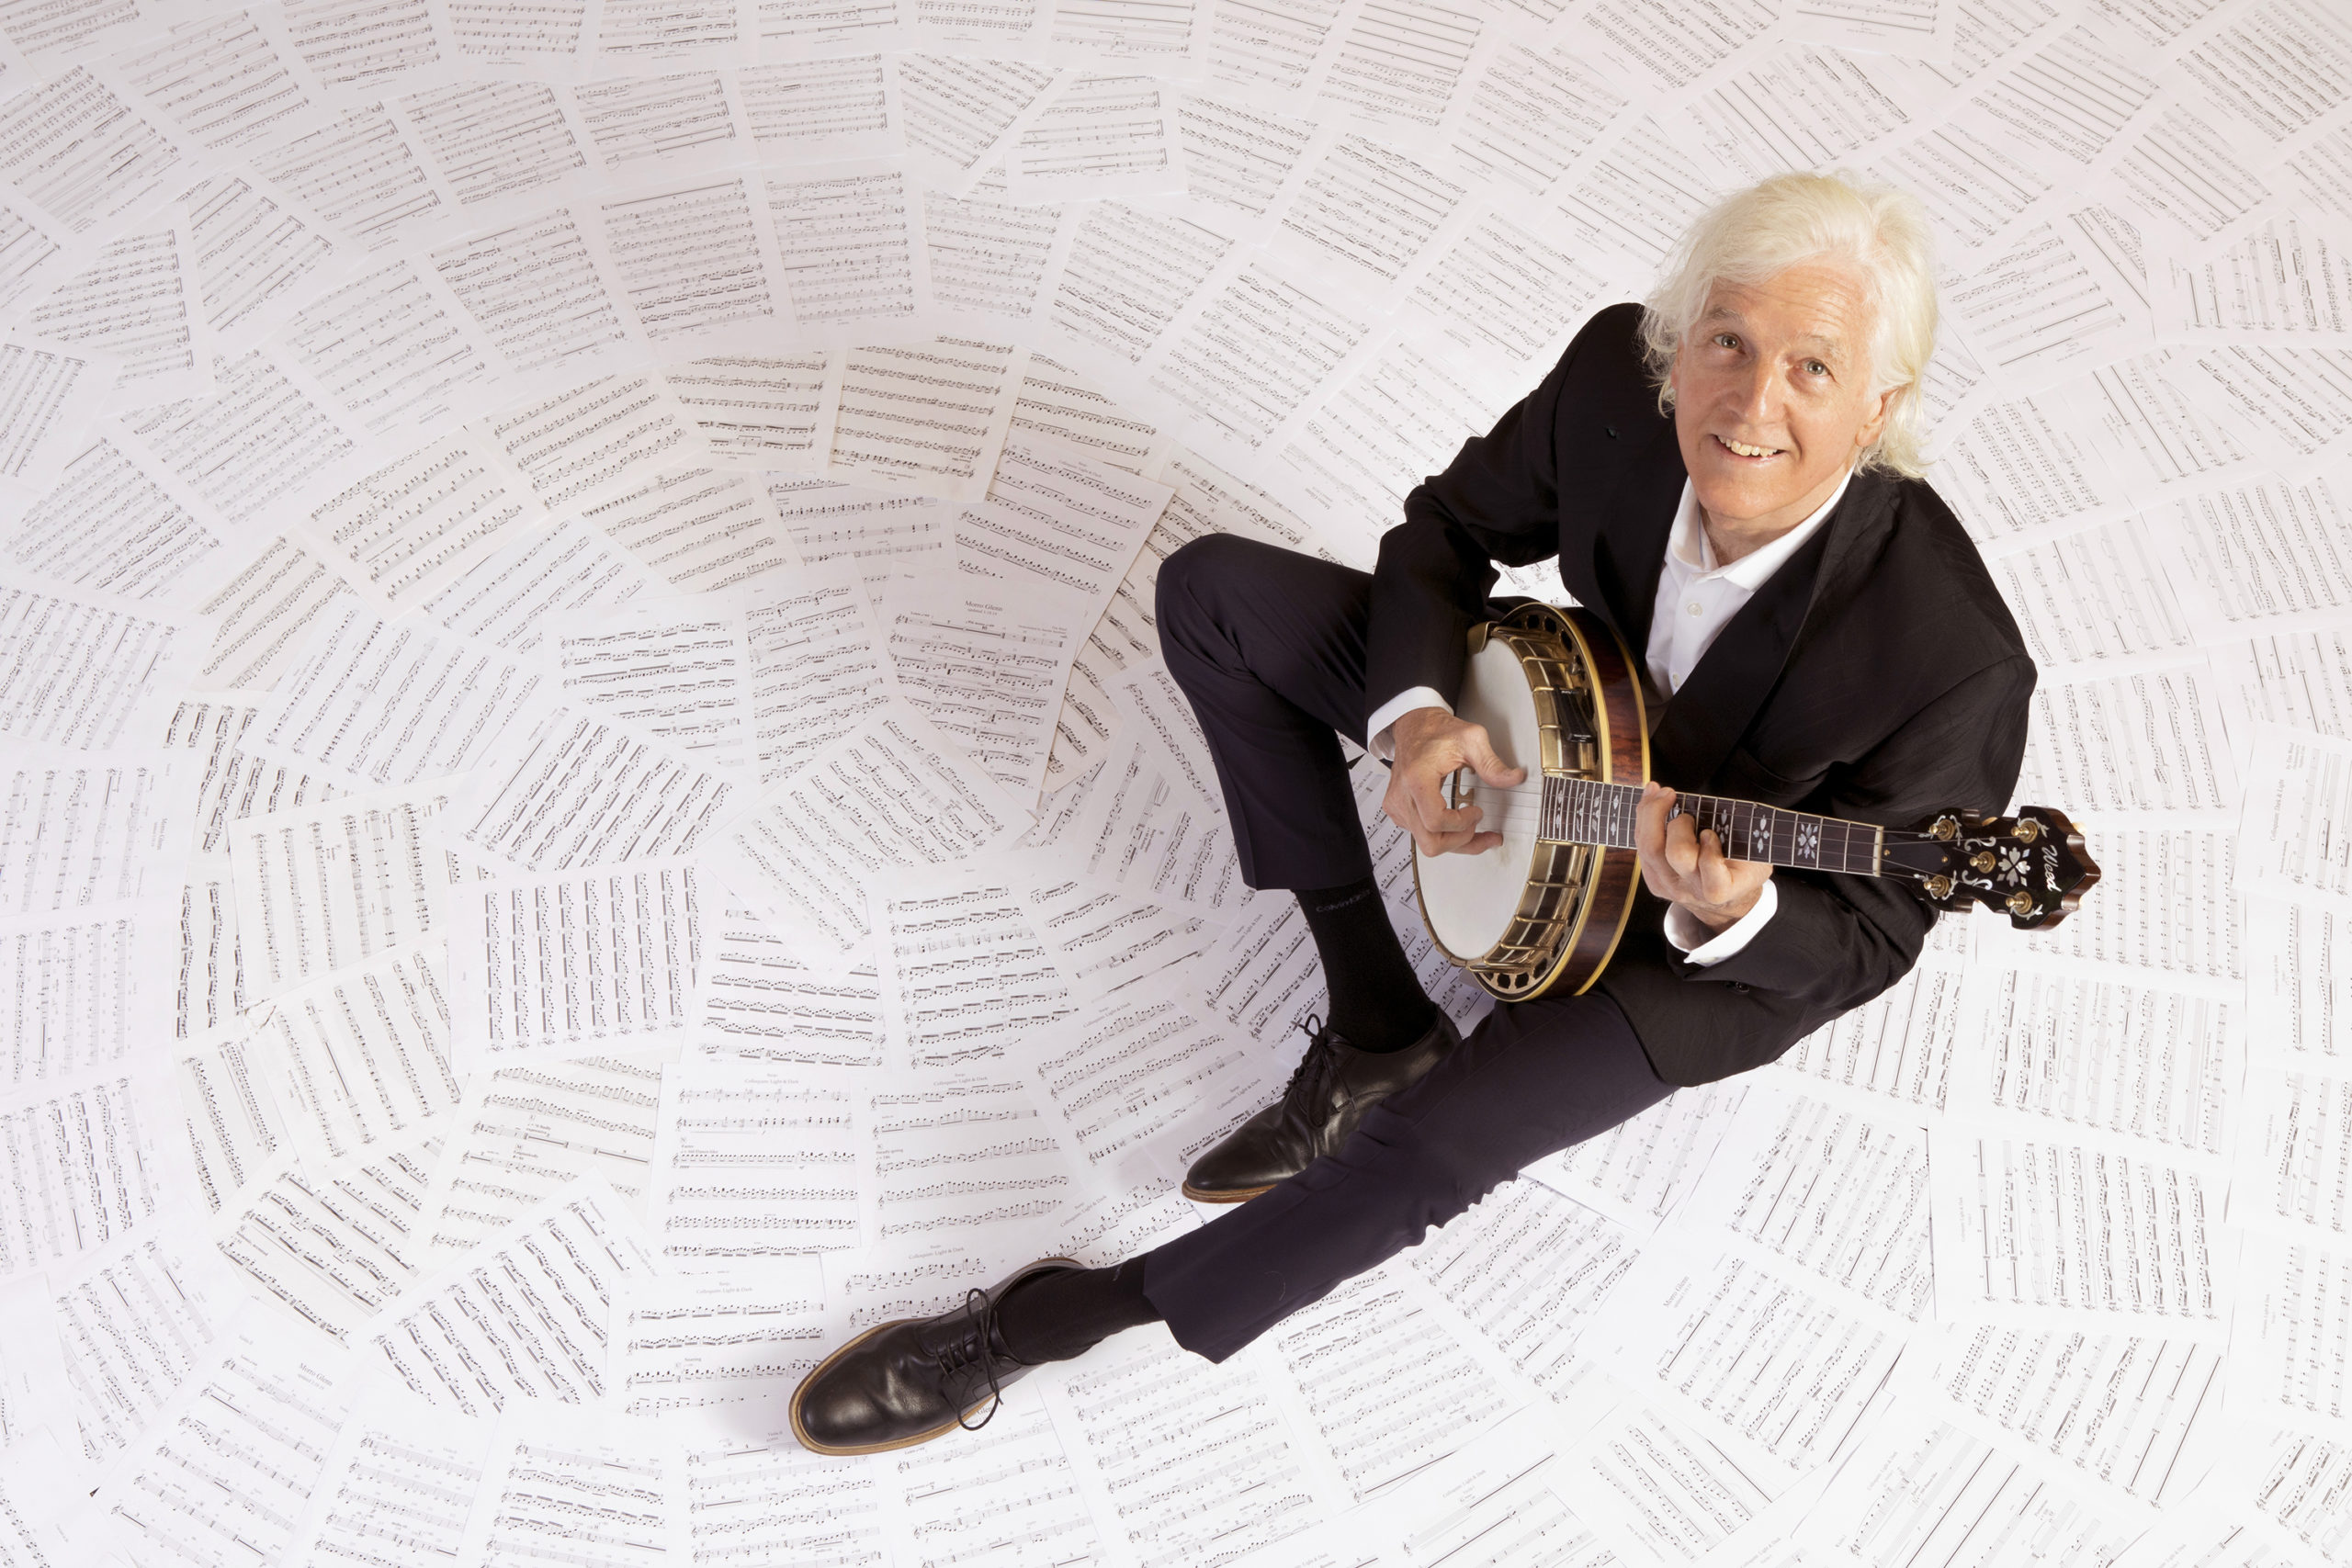 Tim Weed Carves Out His Own Niche With the Classical Banjo